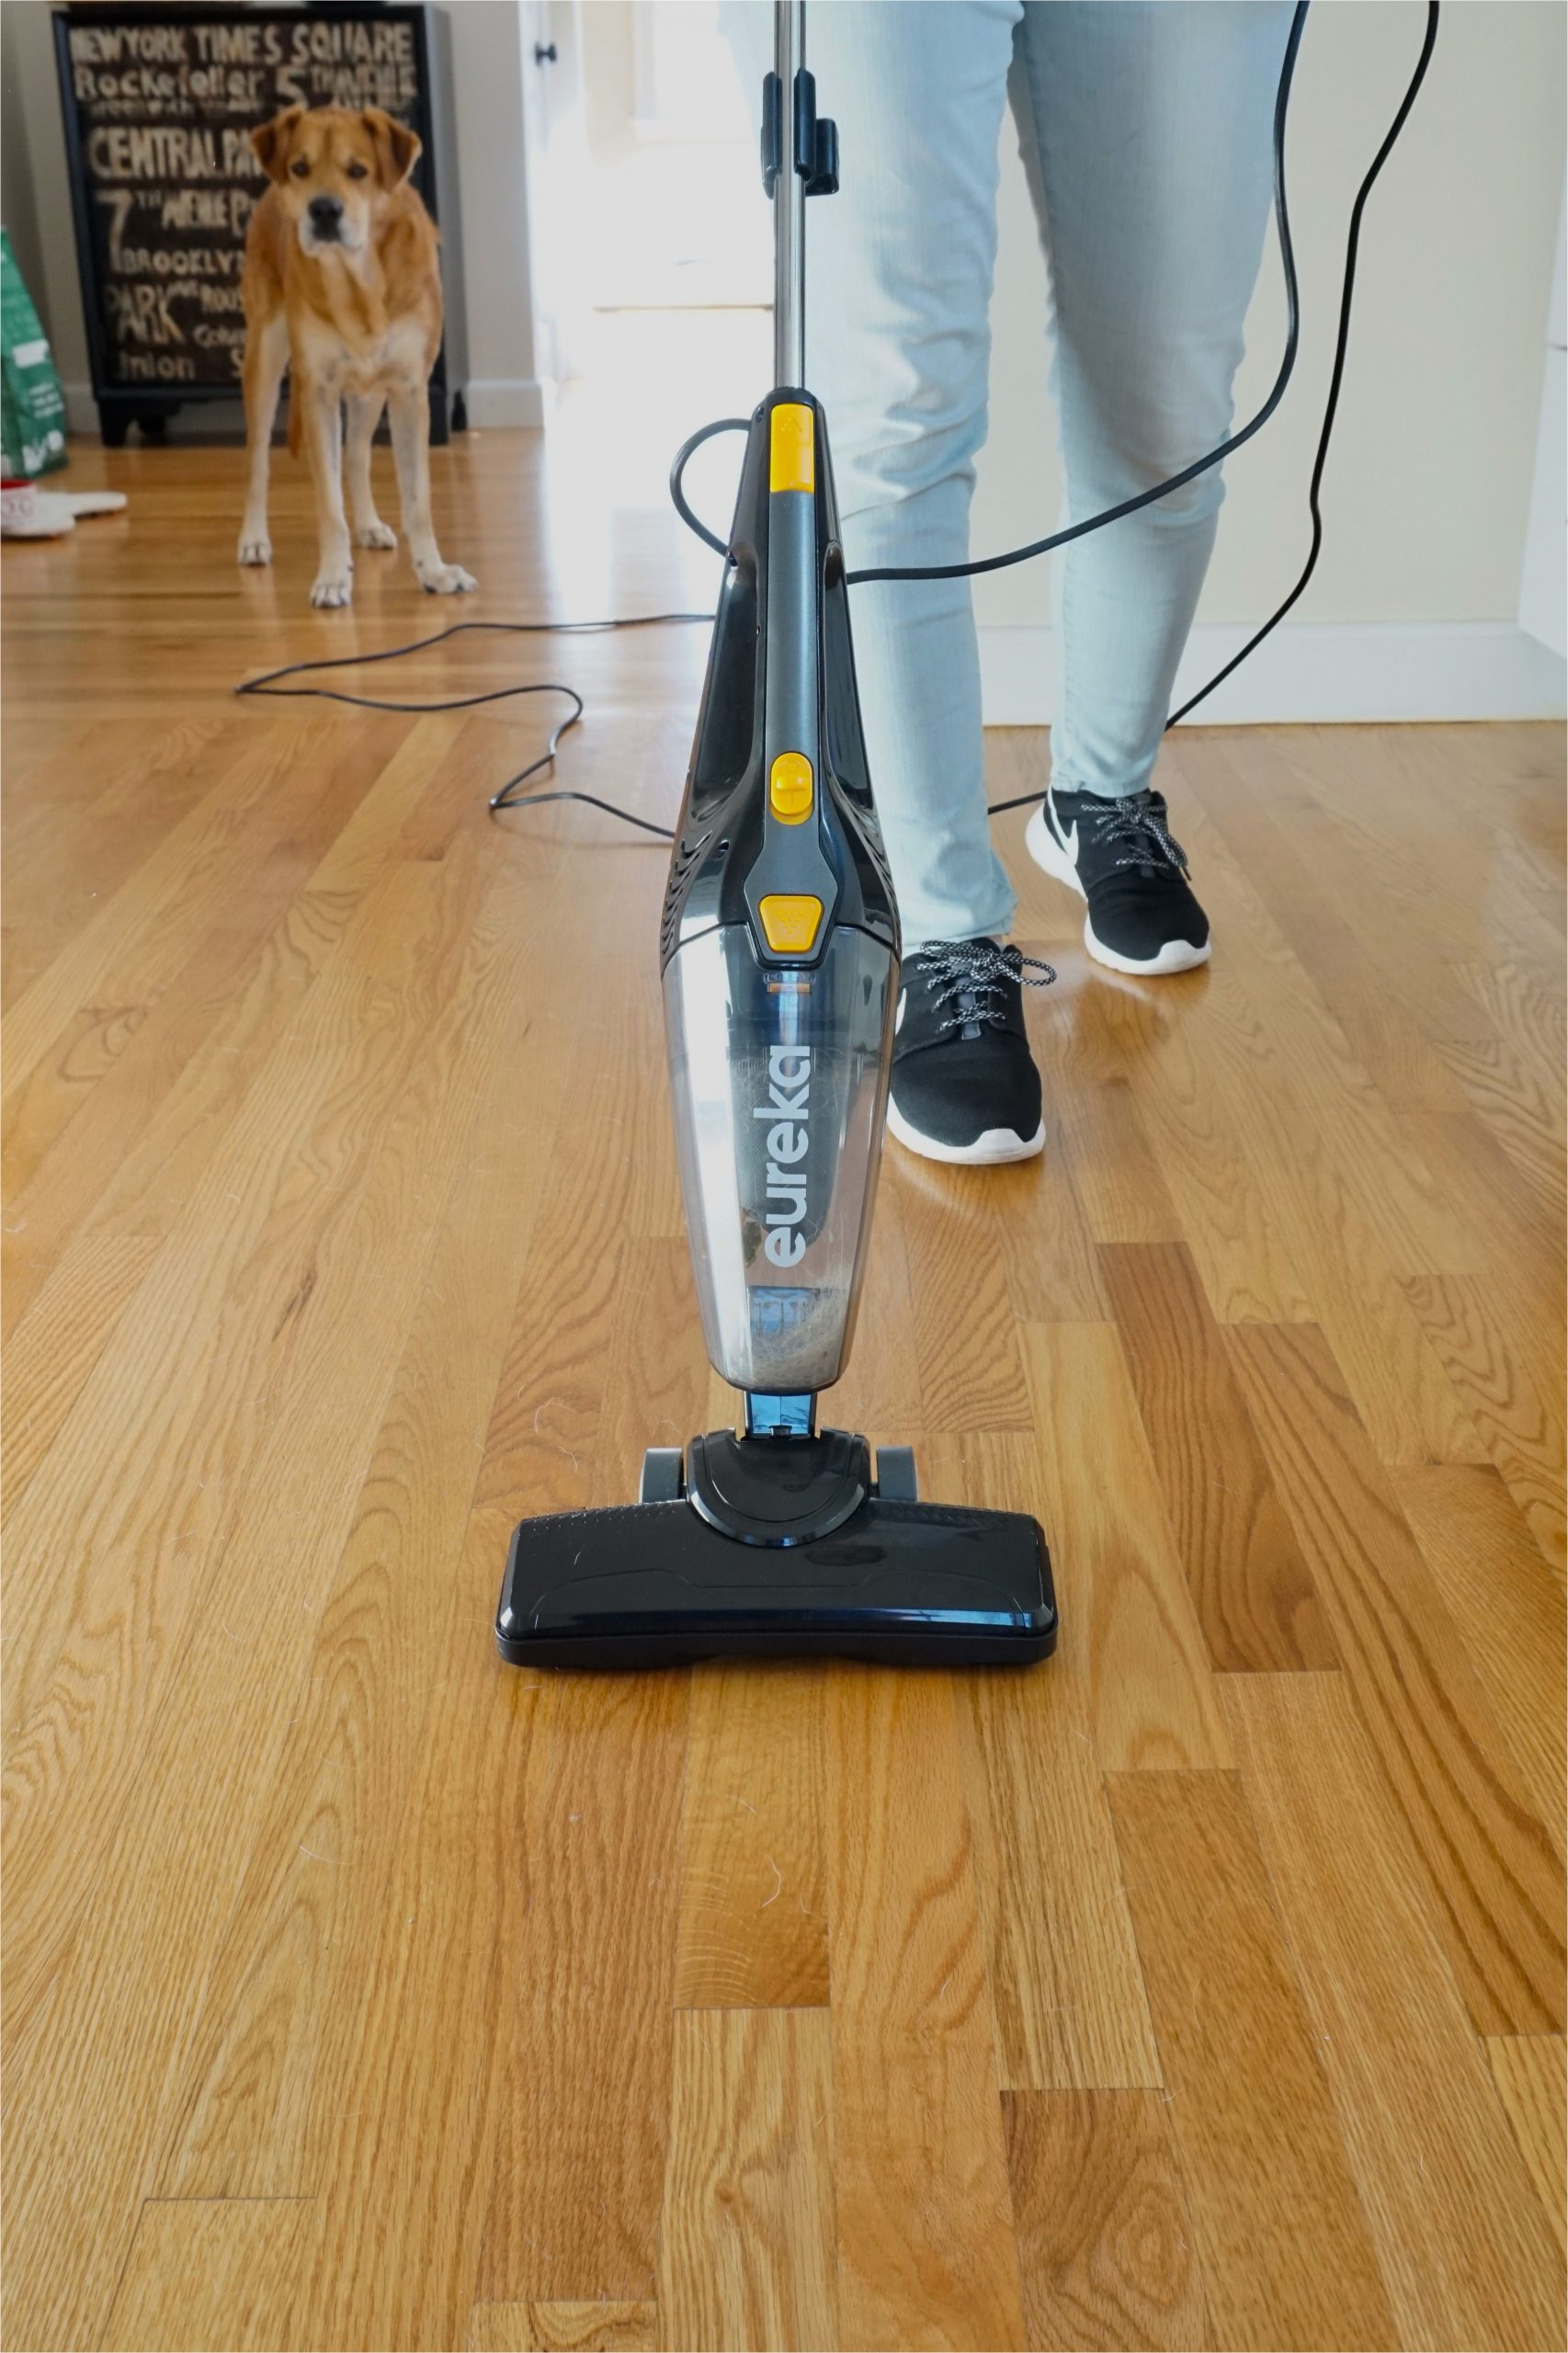 Best Vacuum Cleaner for Wood Floors and area Rugs Eureka Blaze 3 In 1 Swivel Lightweight Stick Vacuum Review